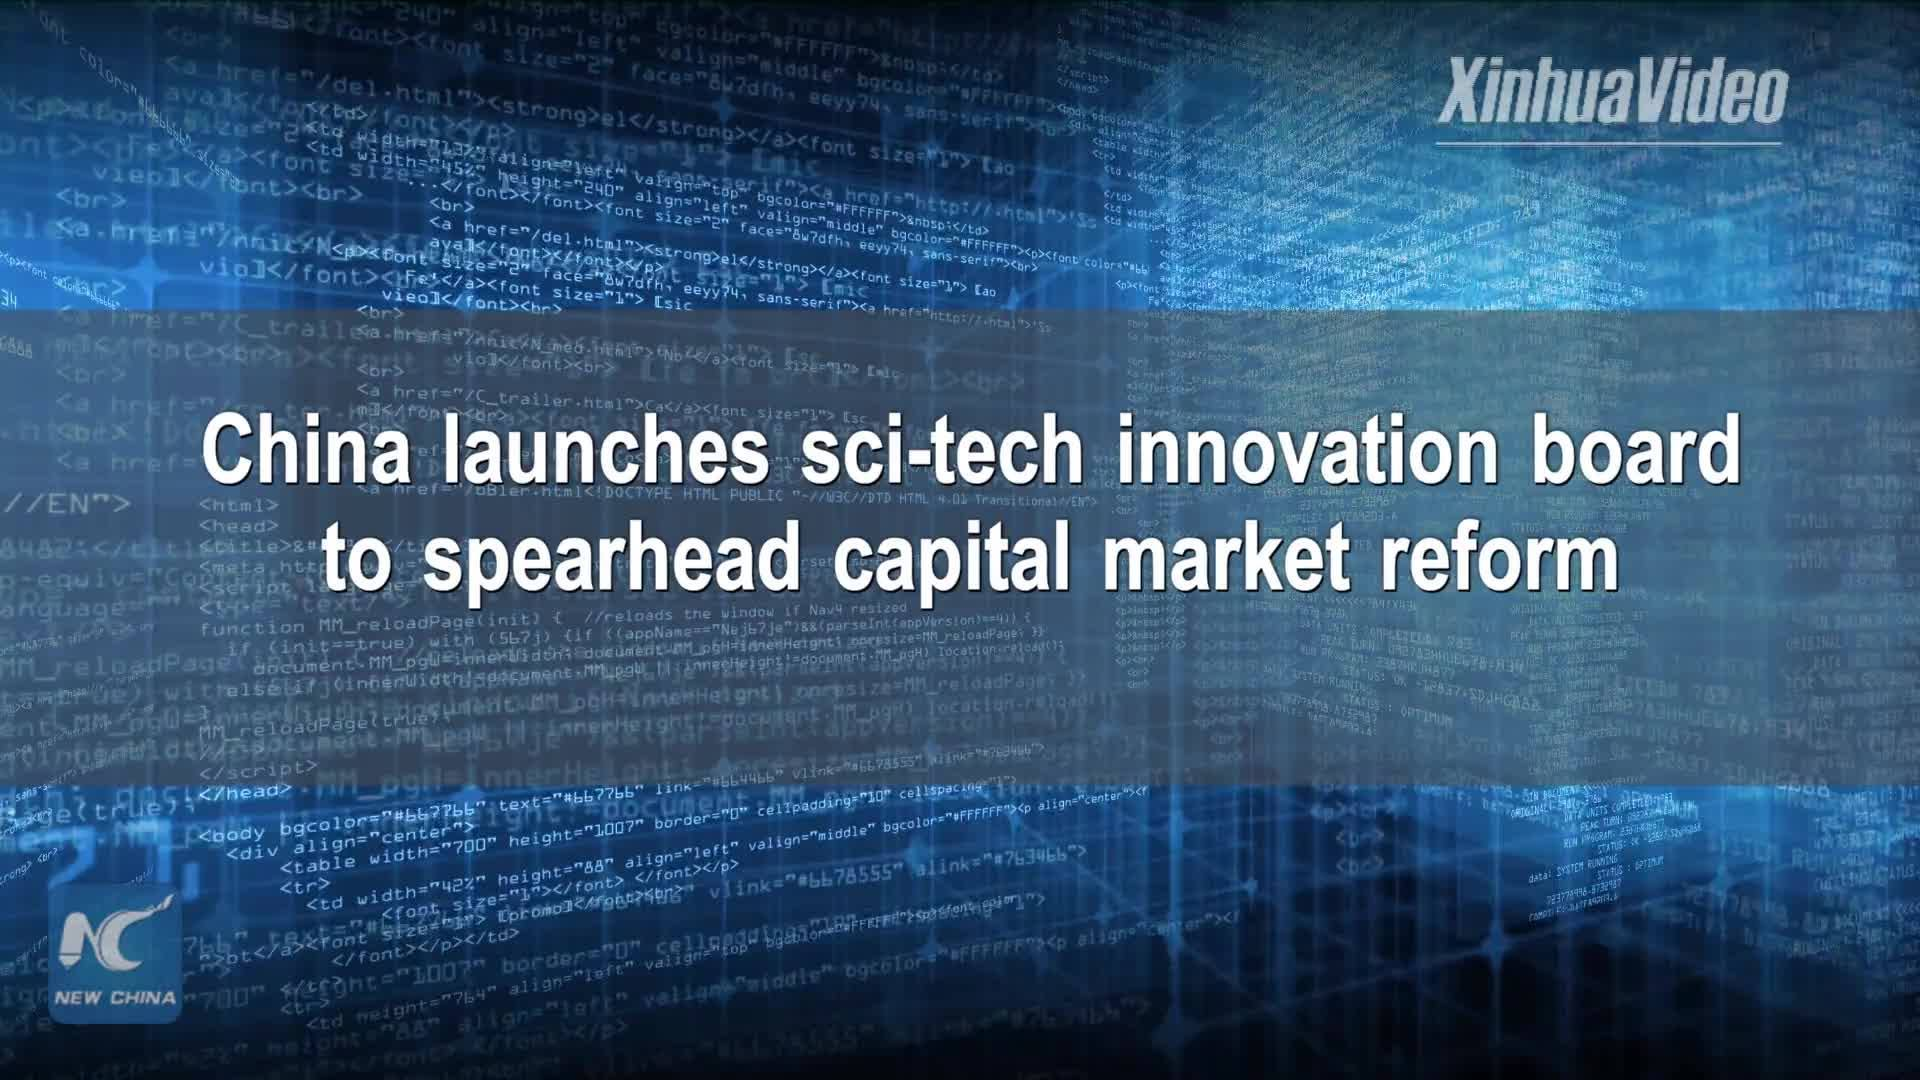 China launches sci-tech innovation board to spearhead capital market reform